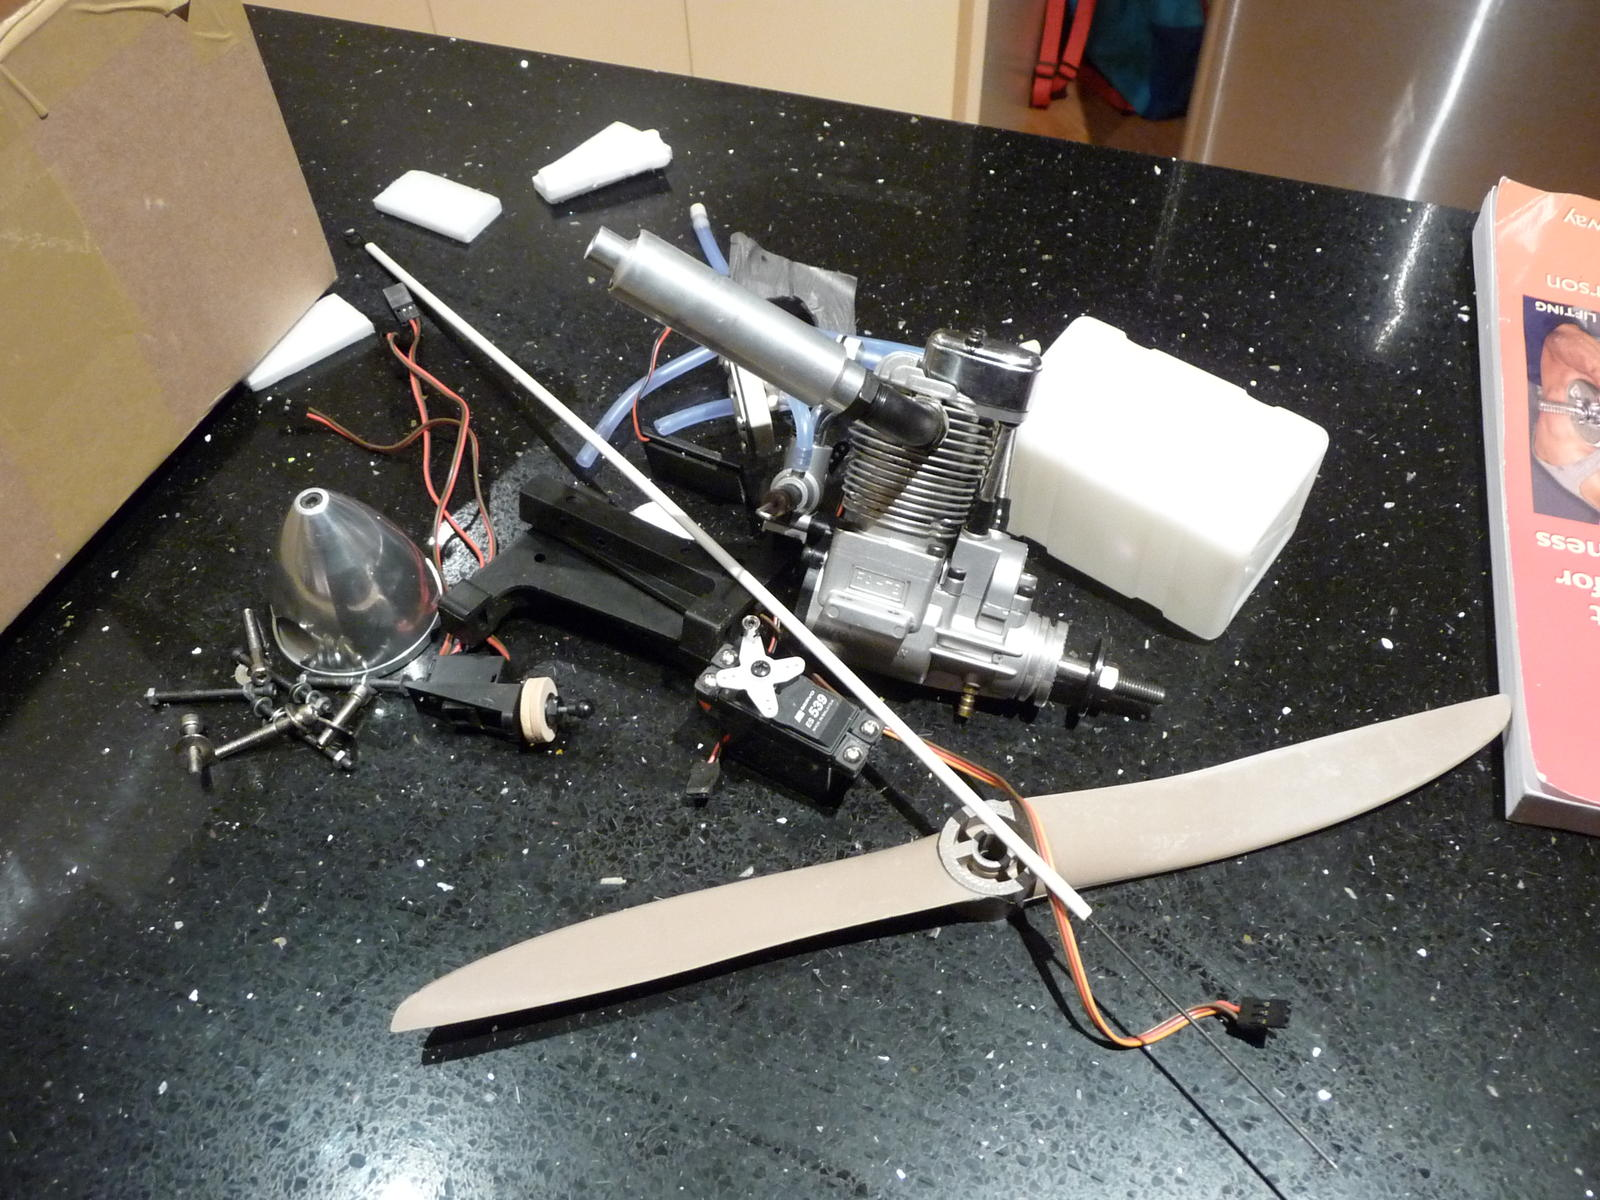 All the glow engine bits removed from the airframe.  Total weight saving of just over 1 kg.